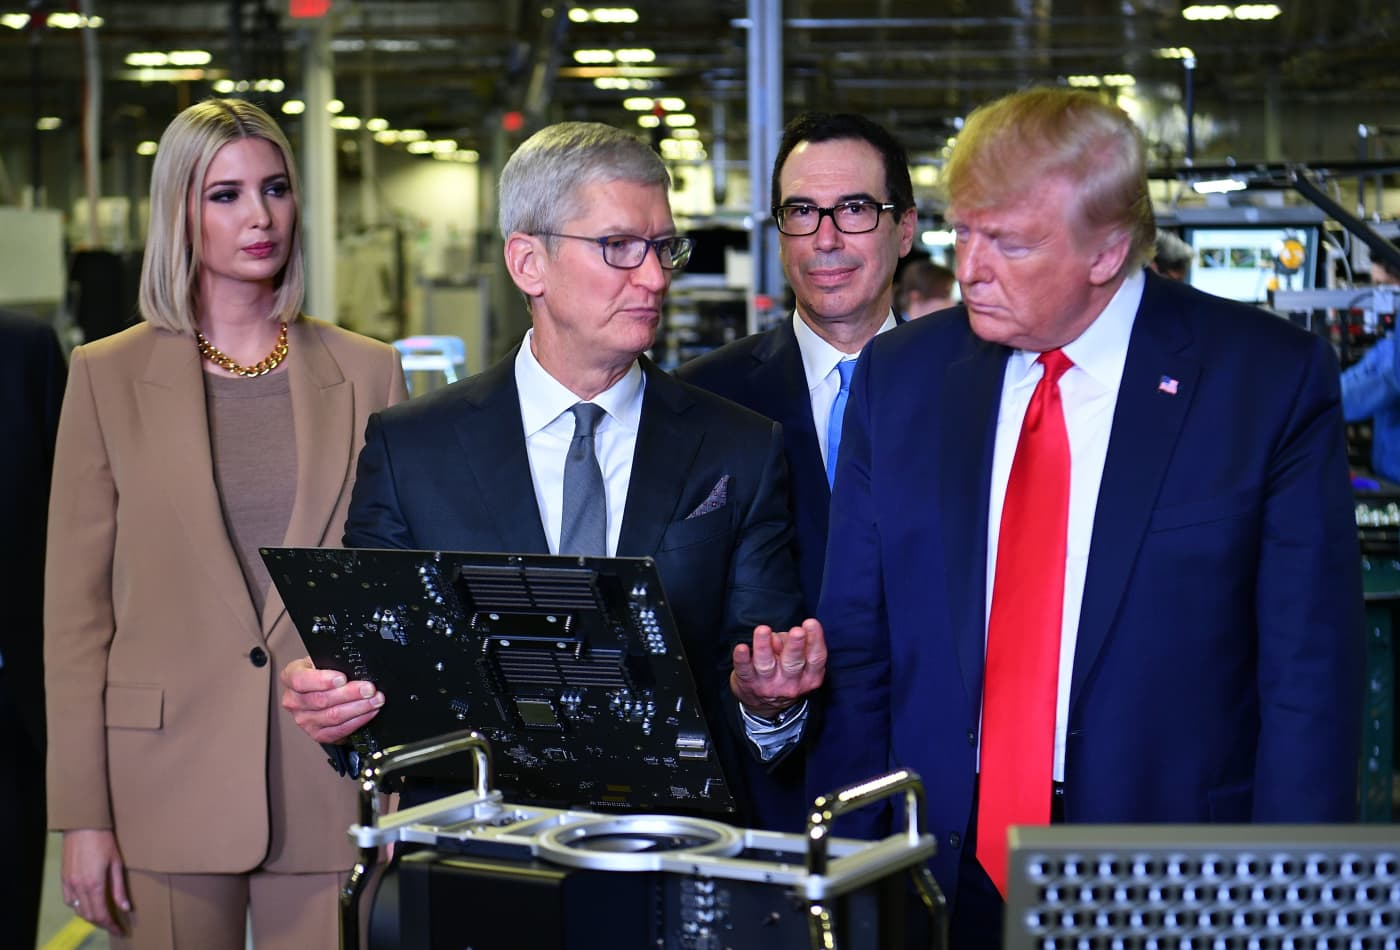 Trump demands Apple unlock iPhones: 'They have the keys to so many criminals and criminal minds'